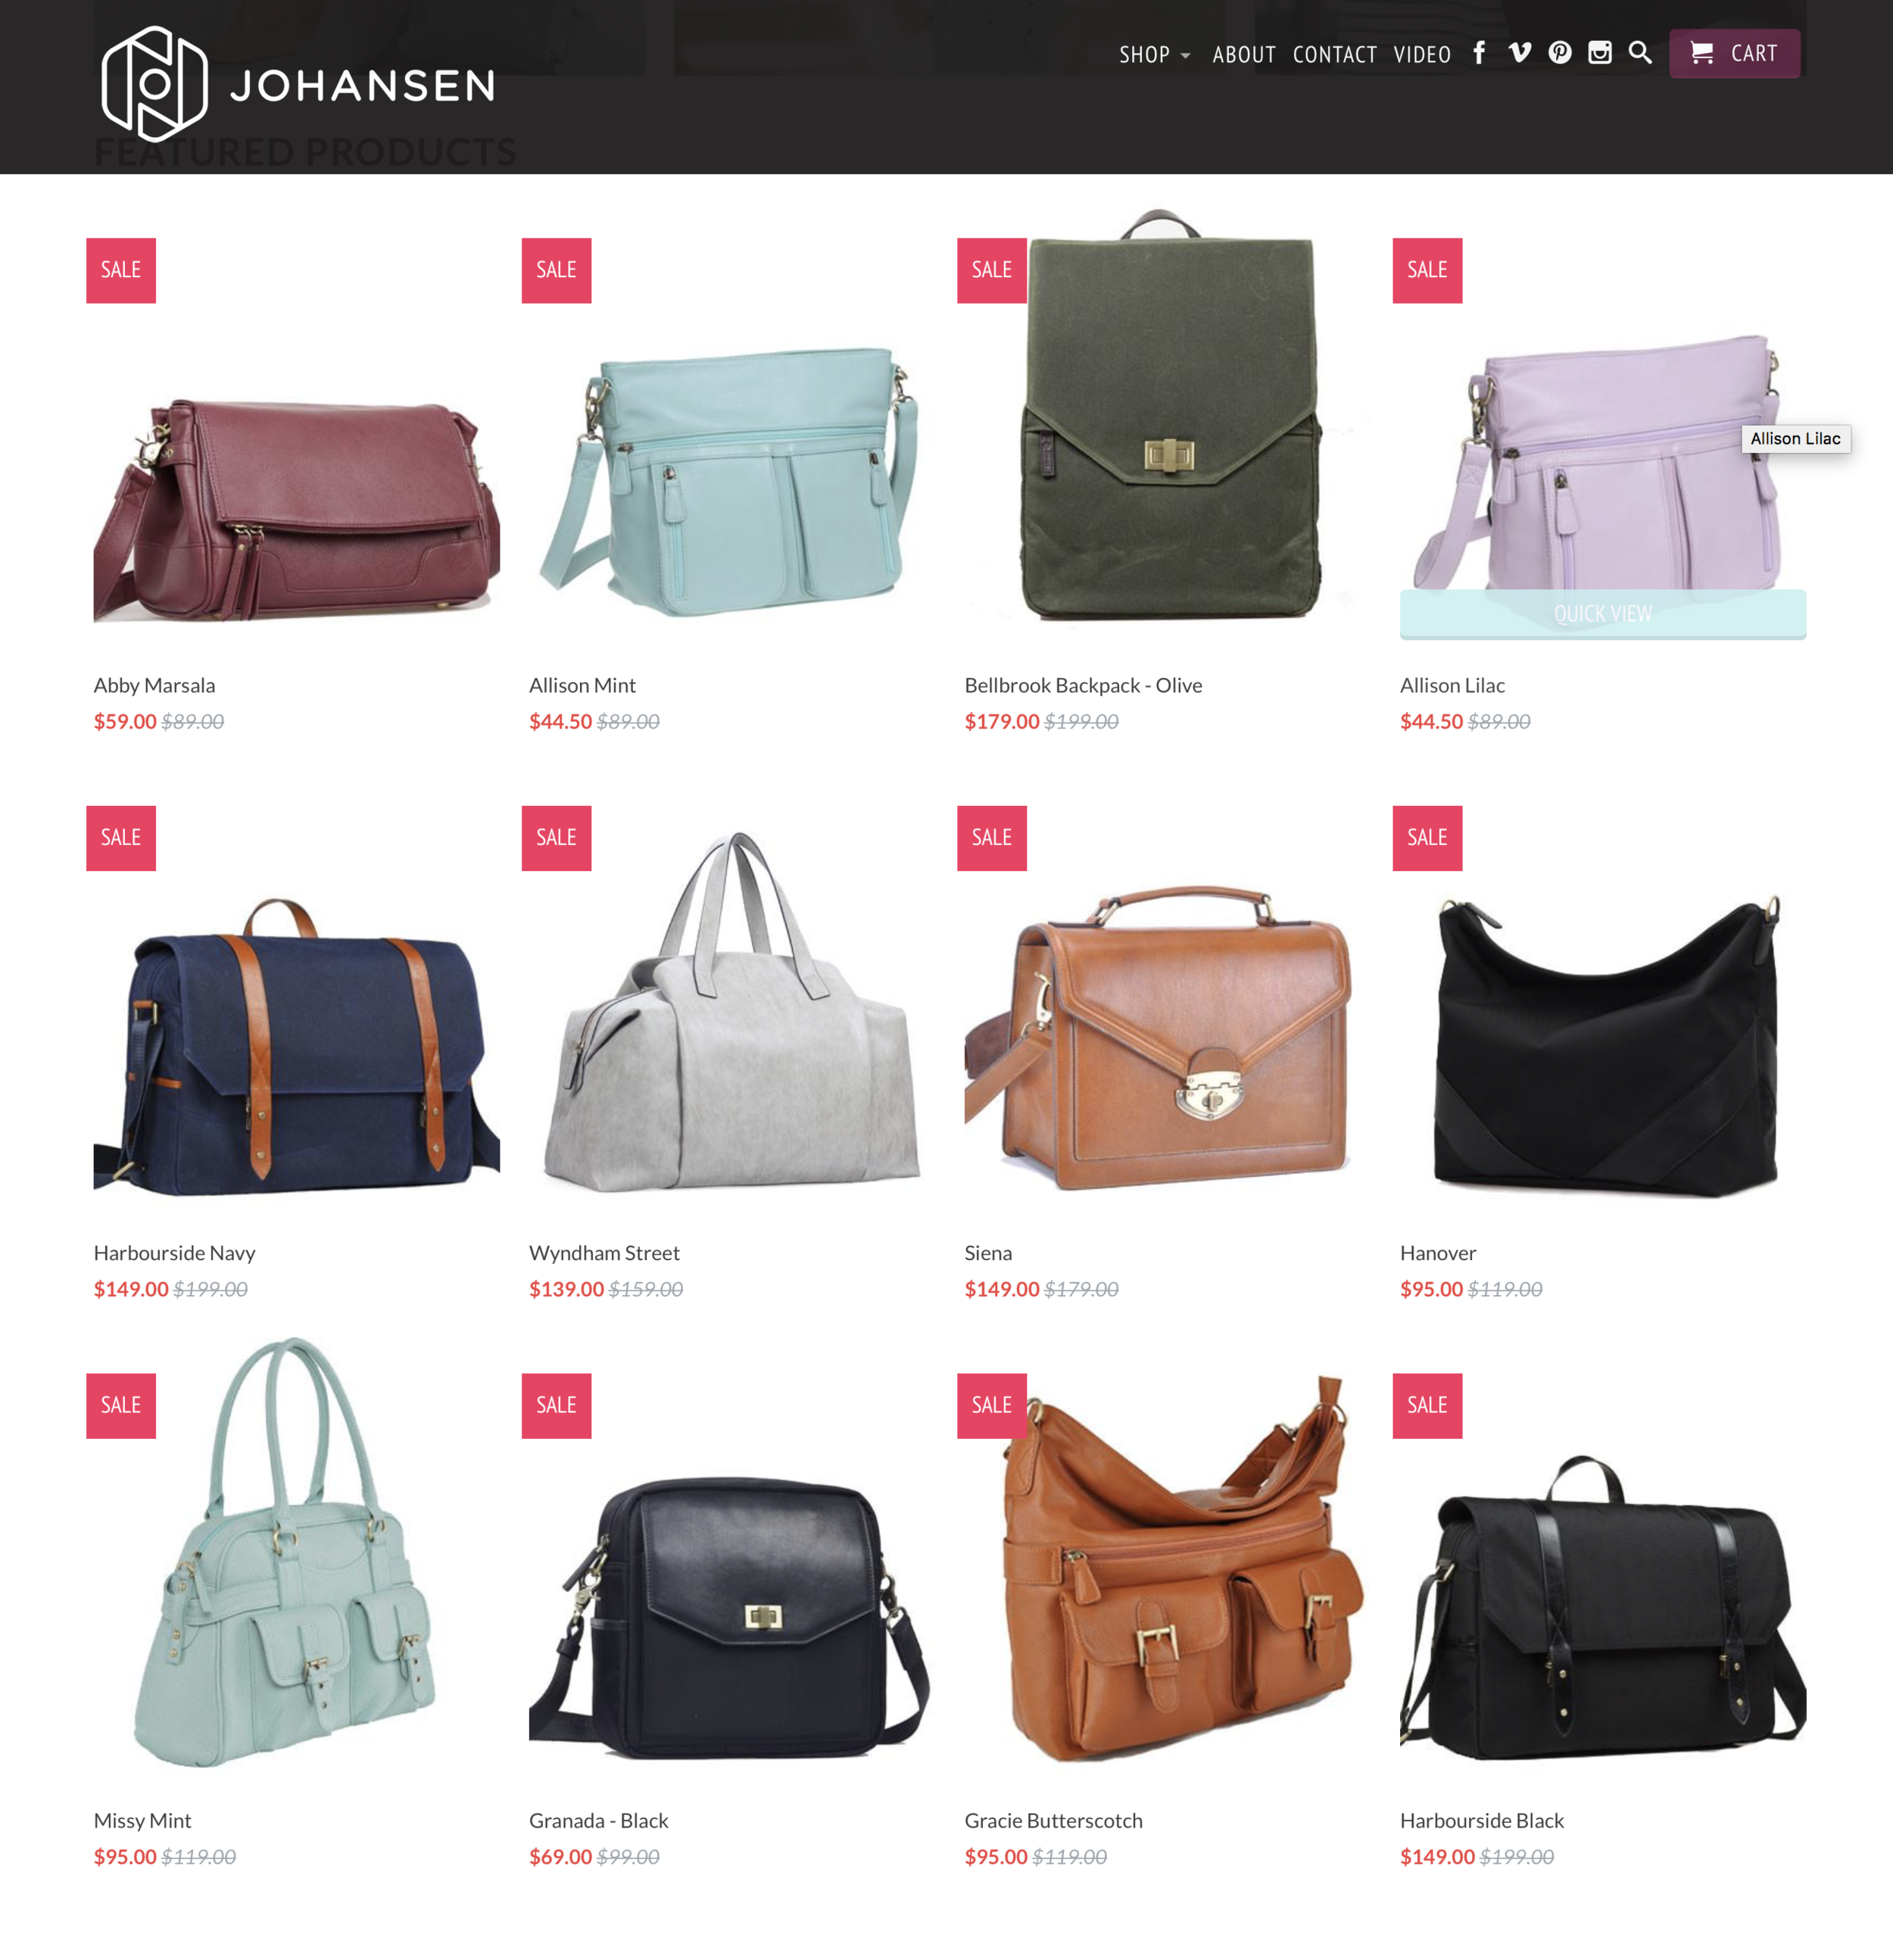 Every camera bag on sale @ jototes.com! - I shoot with the Hanover bag!